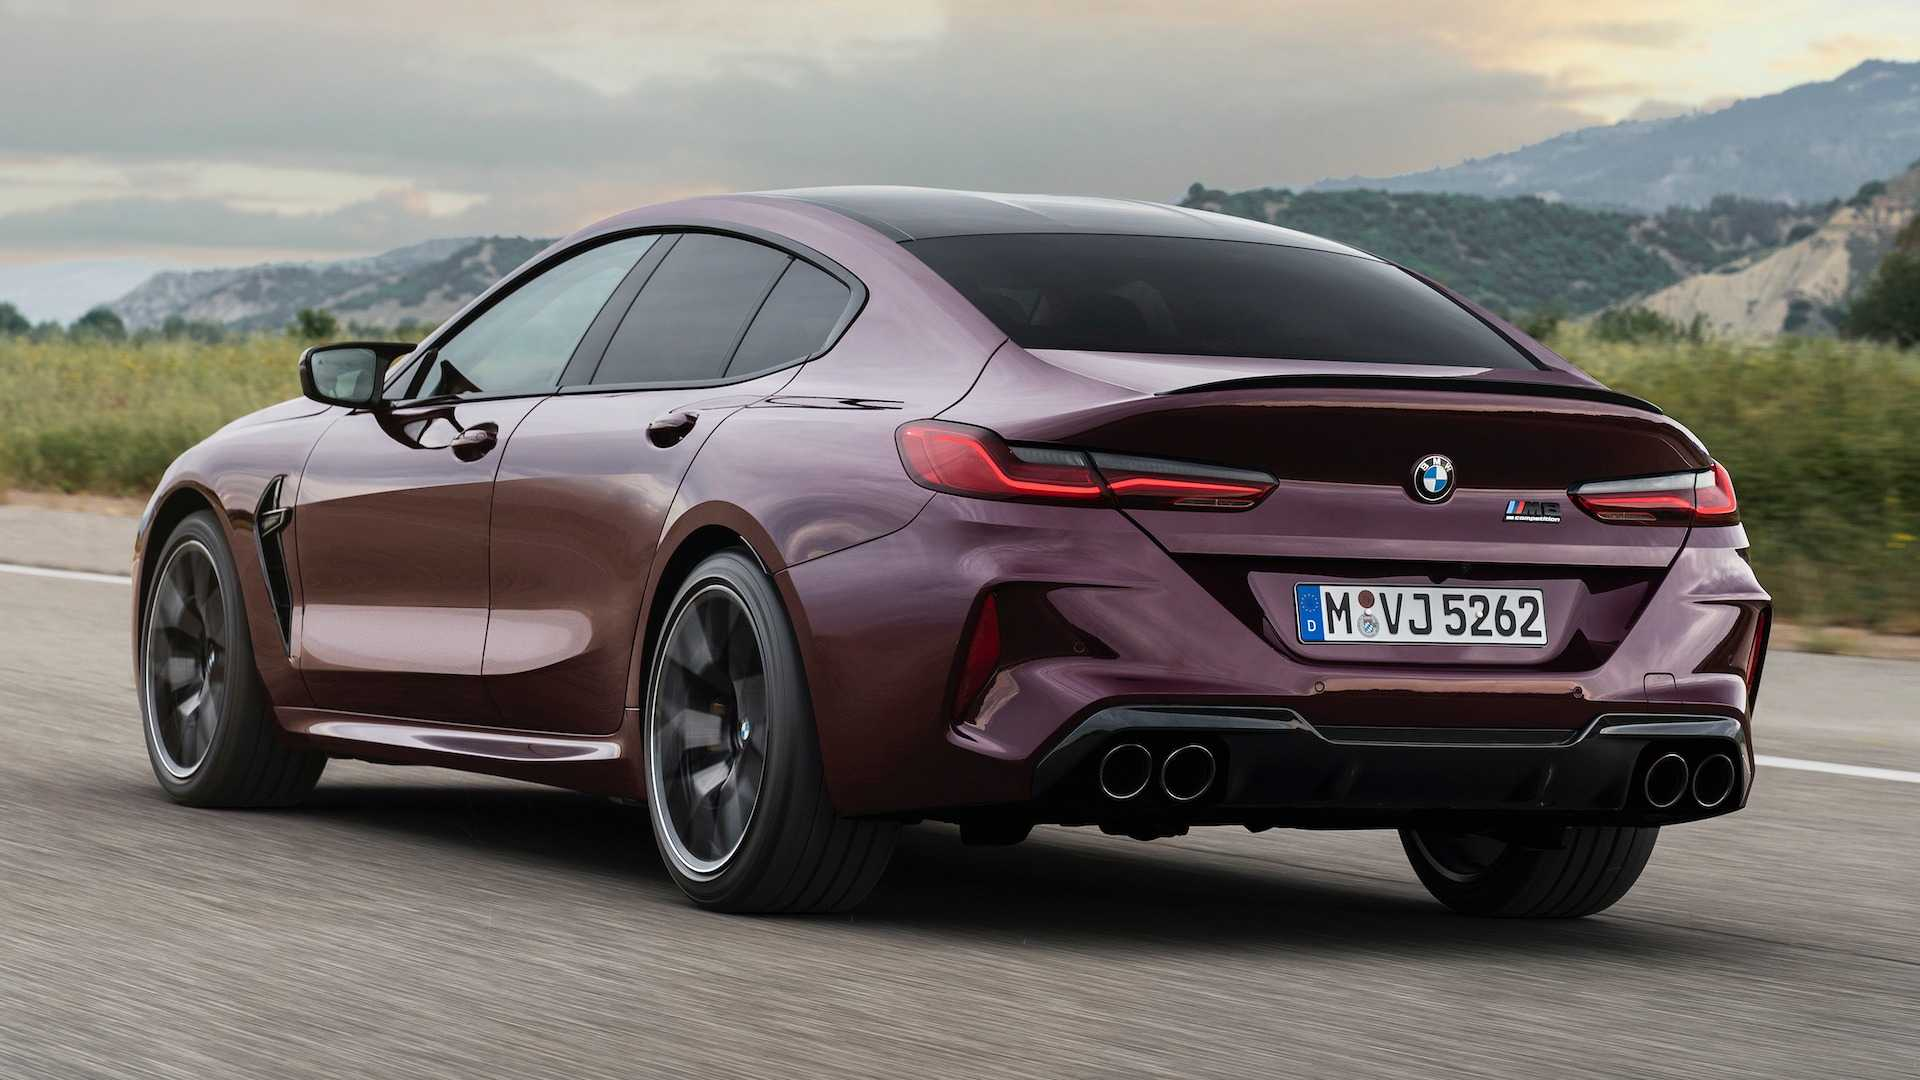 2020-bmw-m8-gran-coupe-competition-5